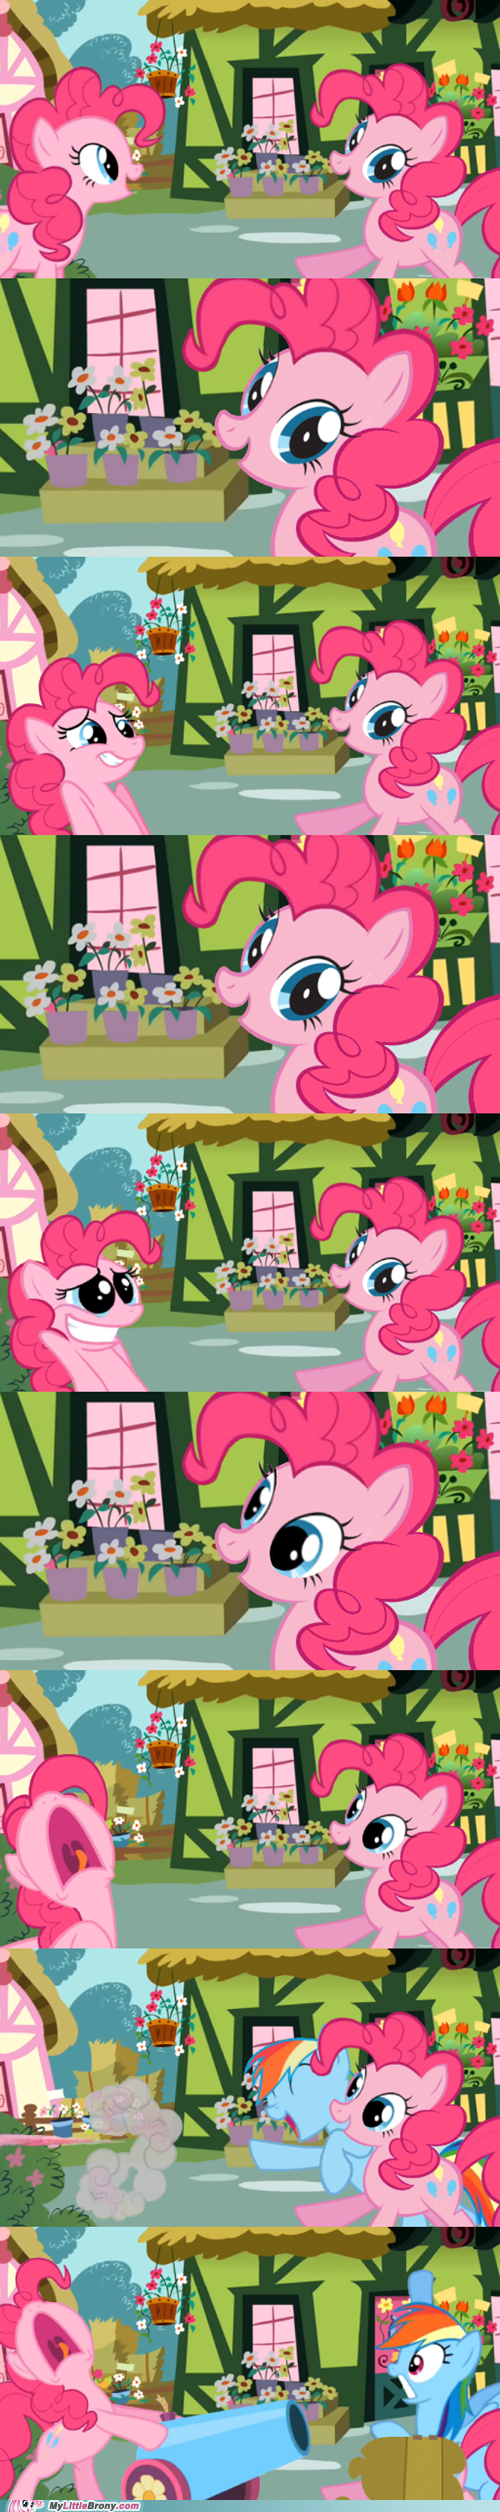 party cannon,comics,pinkie pie,rainbow dash,bolt of stone